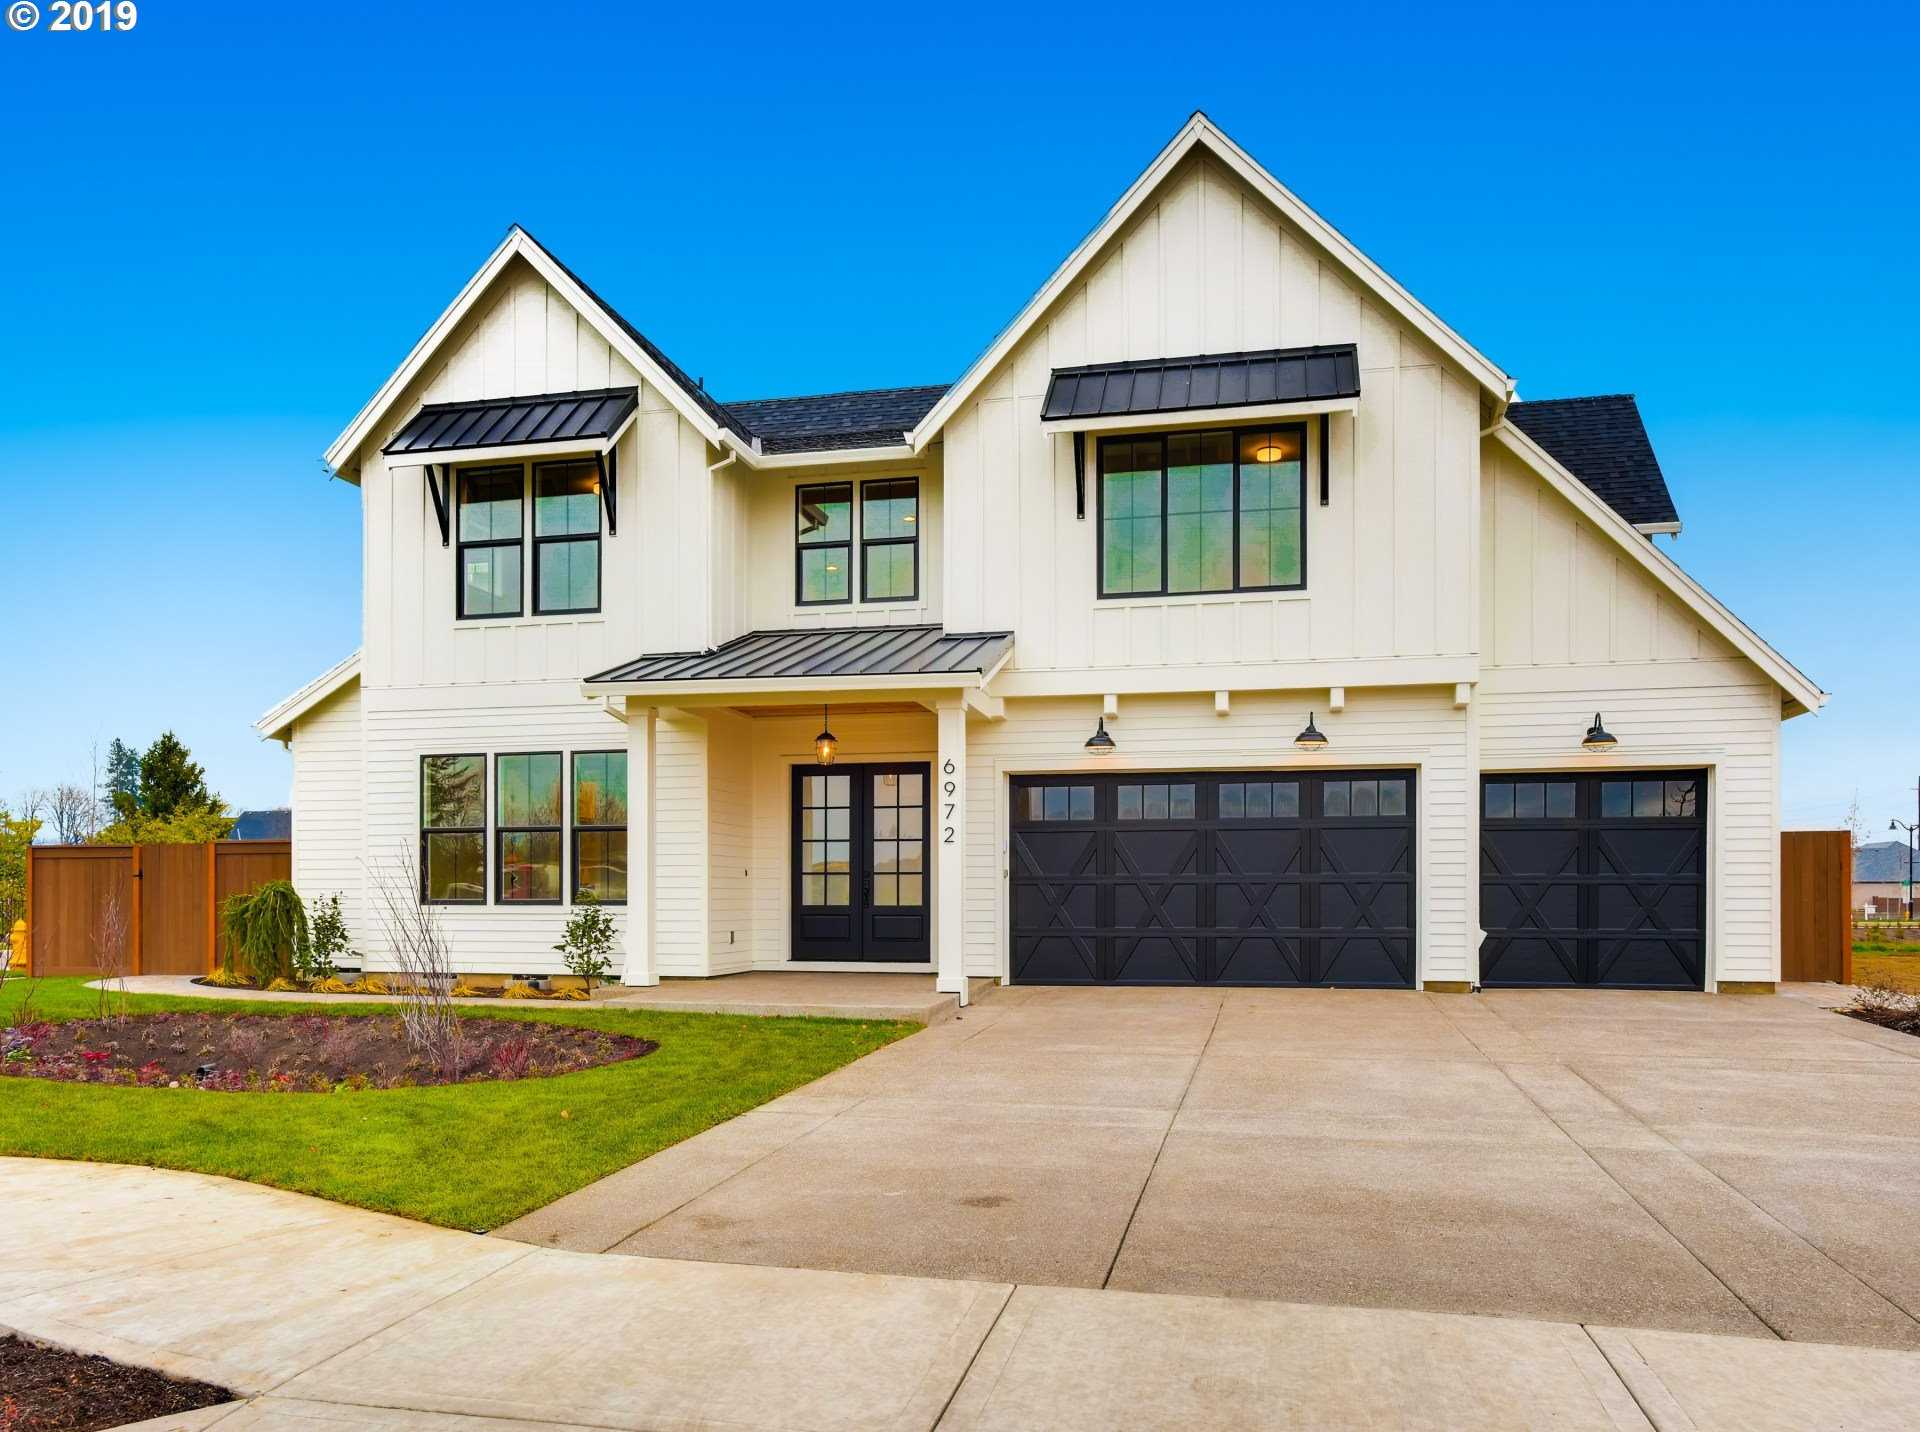 $1,095,000 - 5Br/5Ba -  for Sale in Stafford Meadows At Frog Pond, Wilsonville